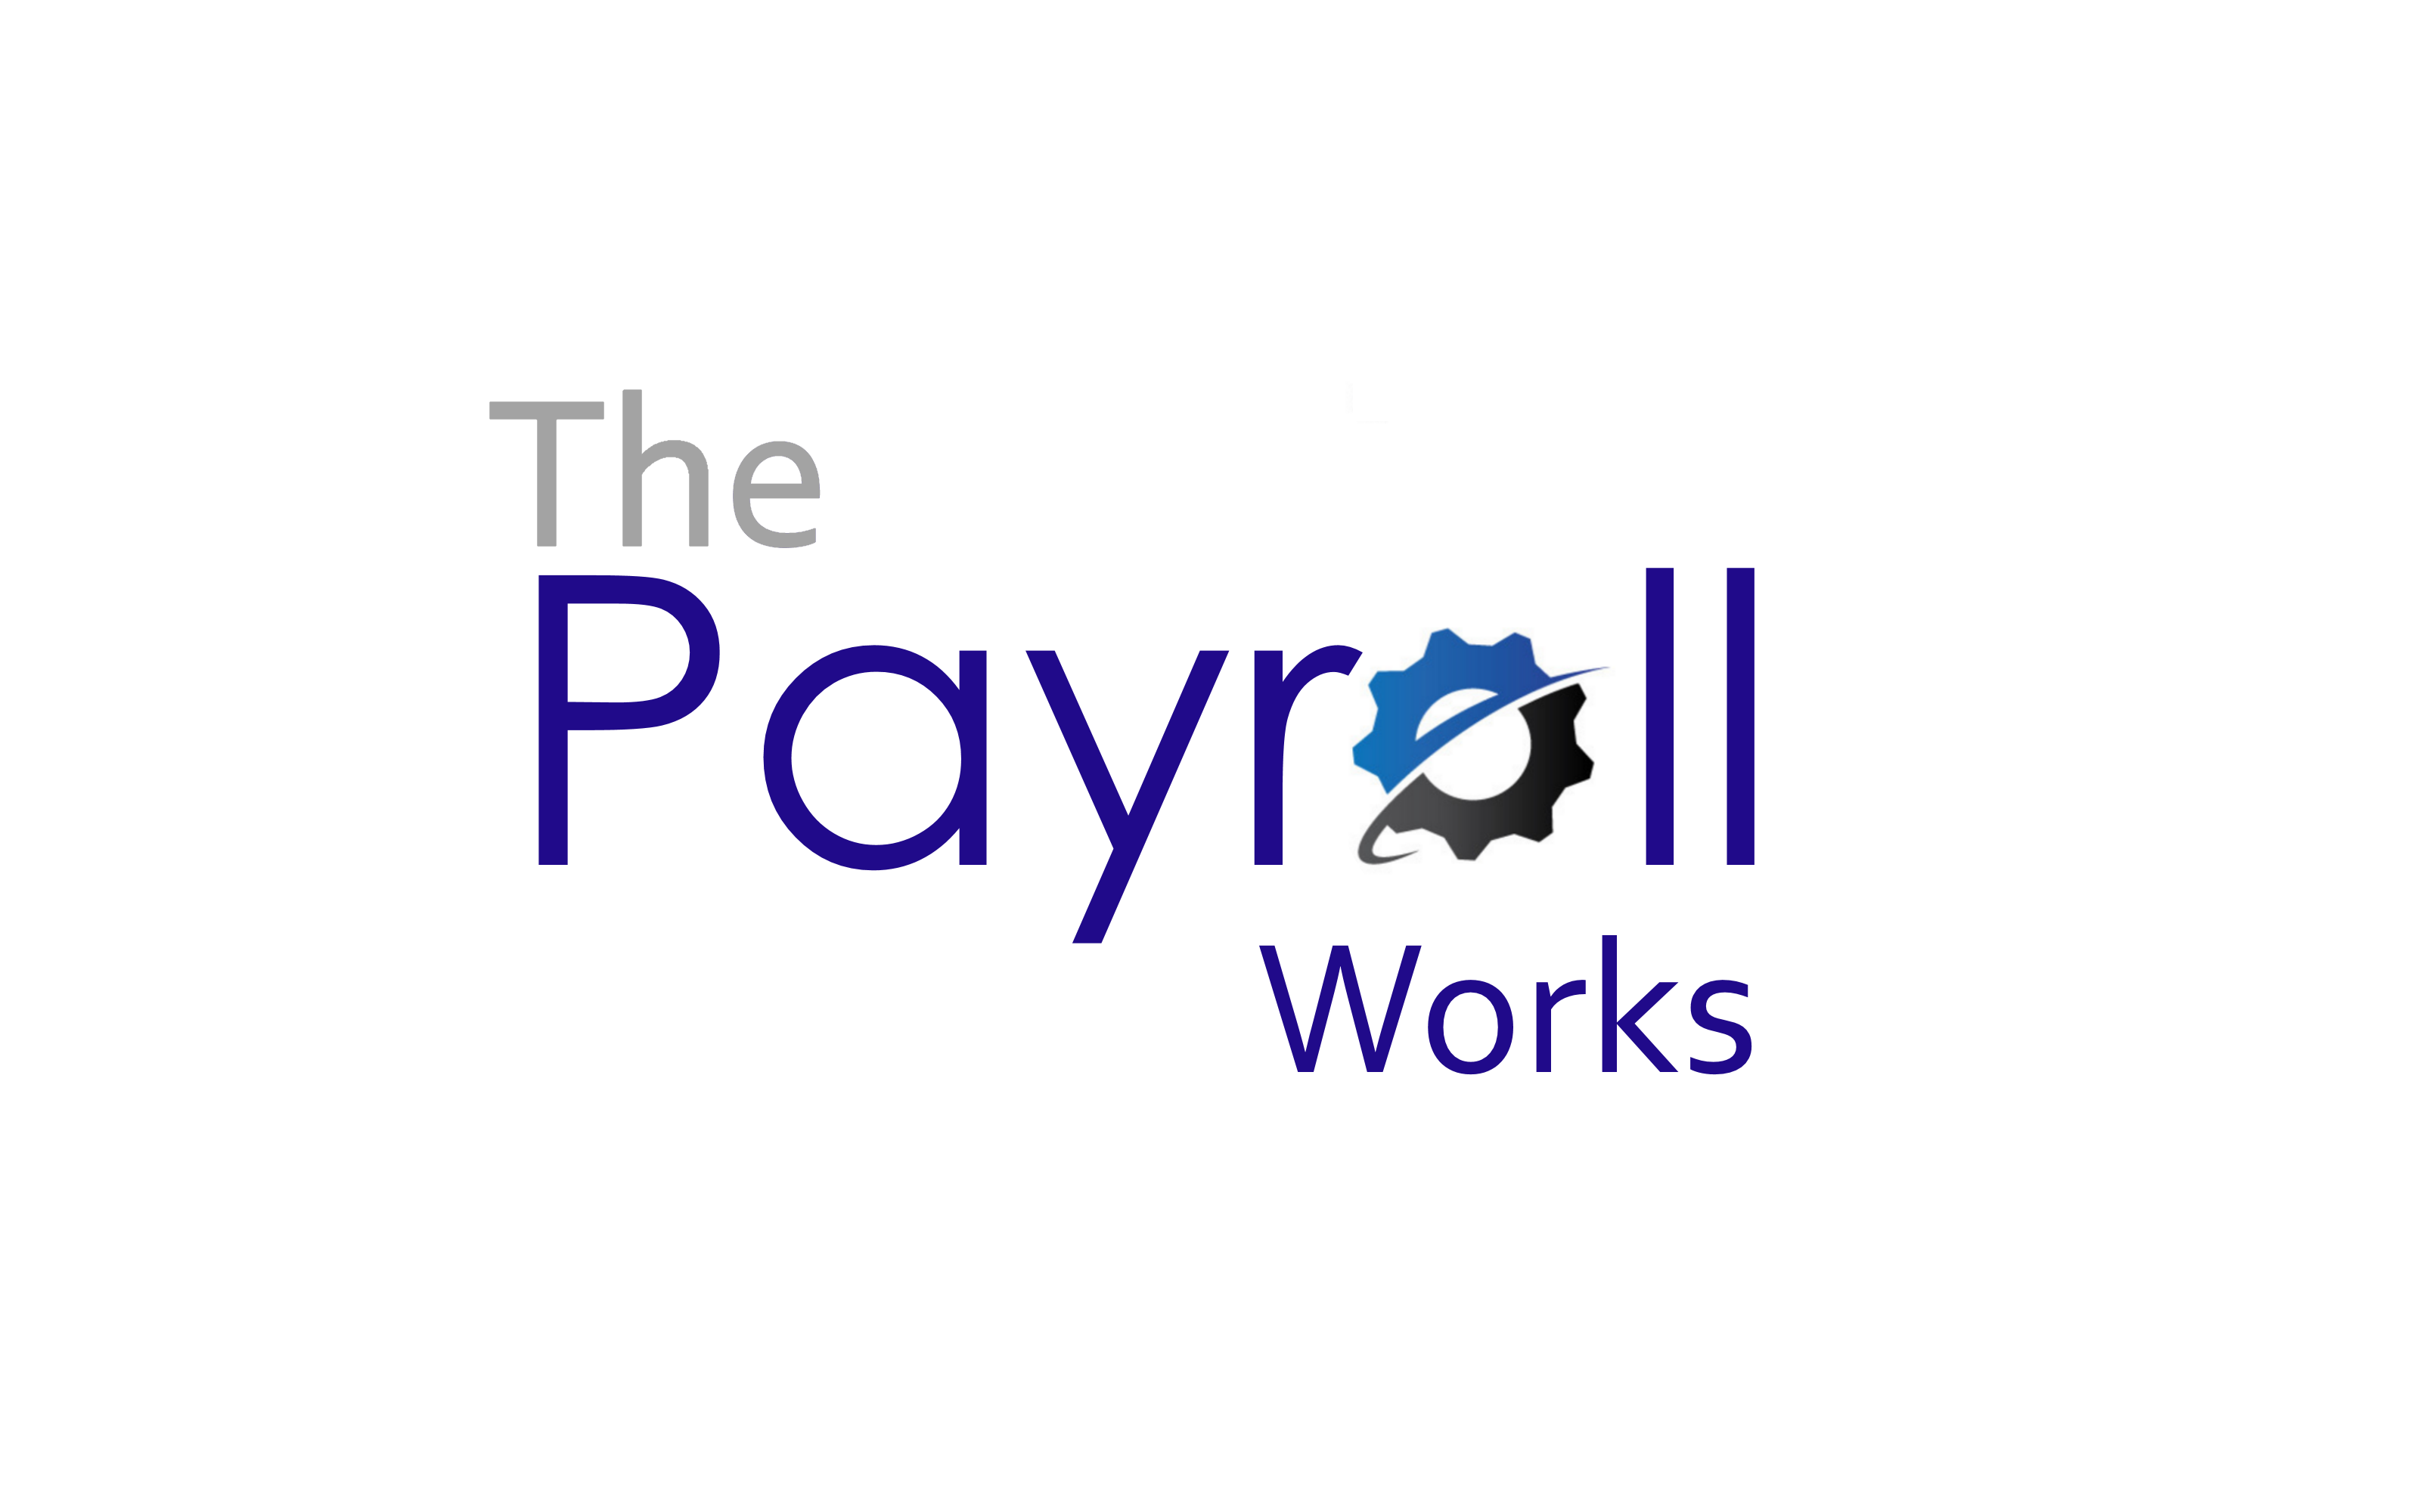 Logo Design by Roberto Bassi - Entry No. 29 in the Logo Design Contest Captivating Logo Design for The Payroll Works.